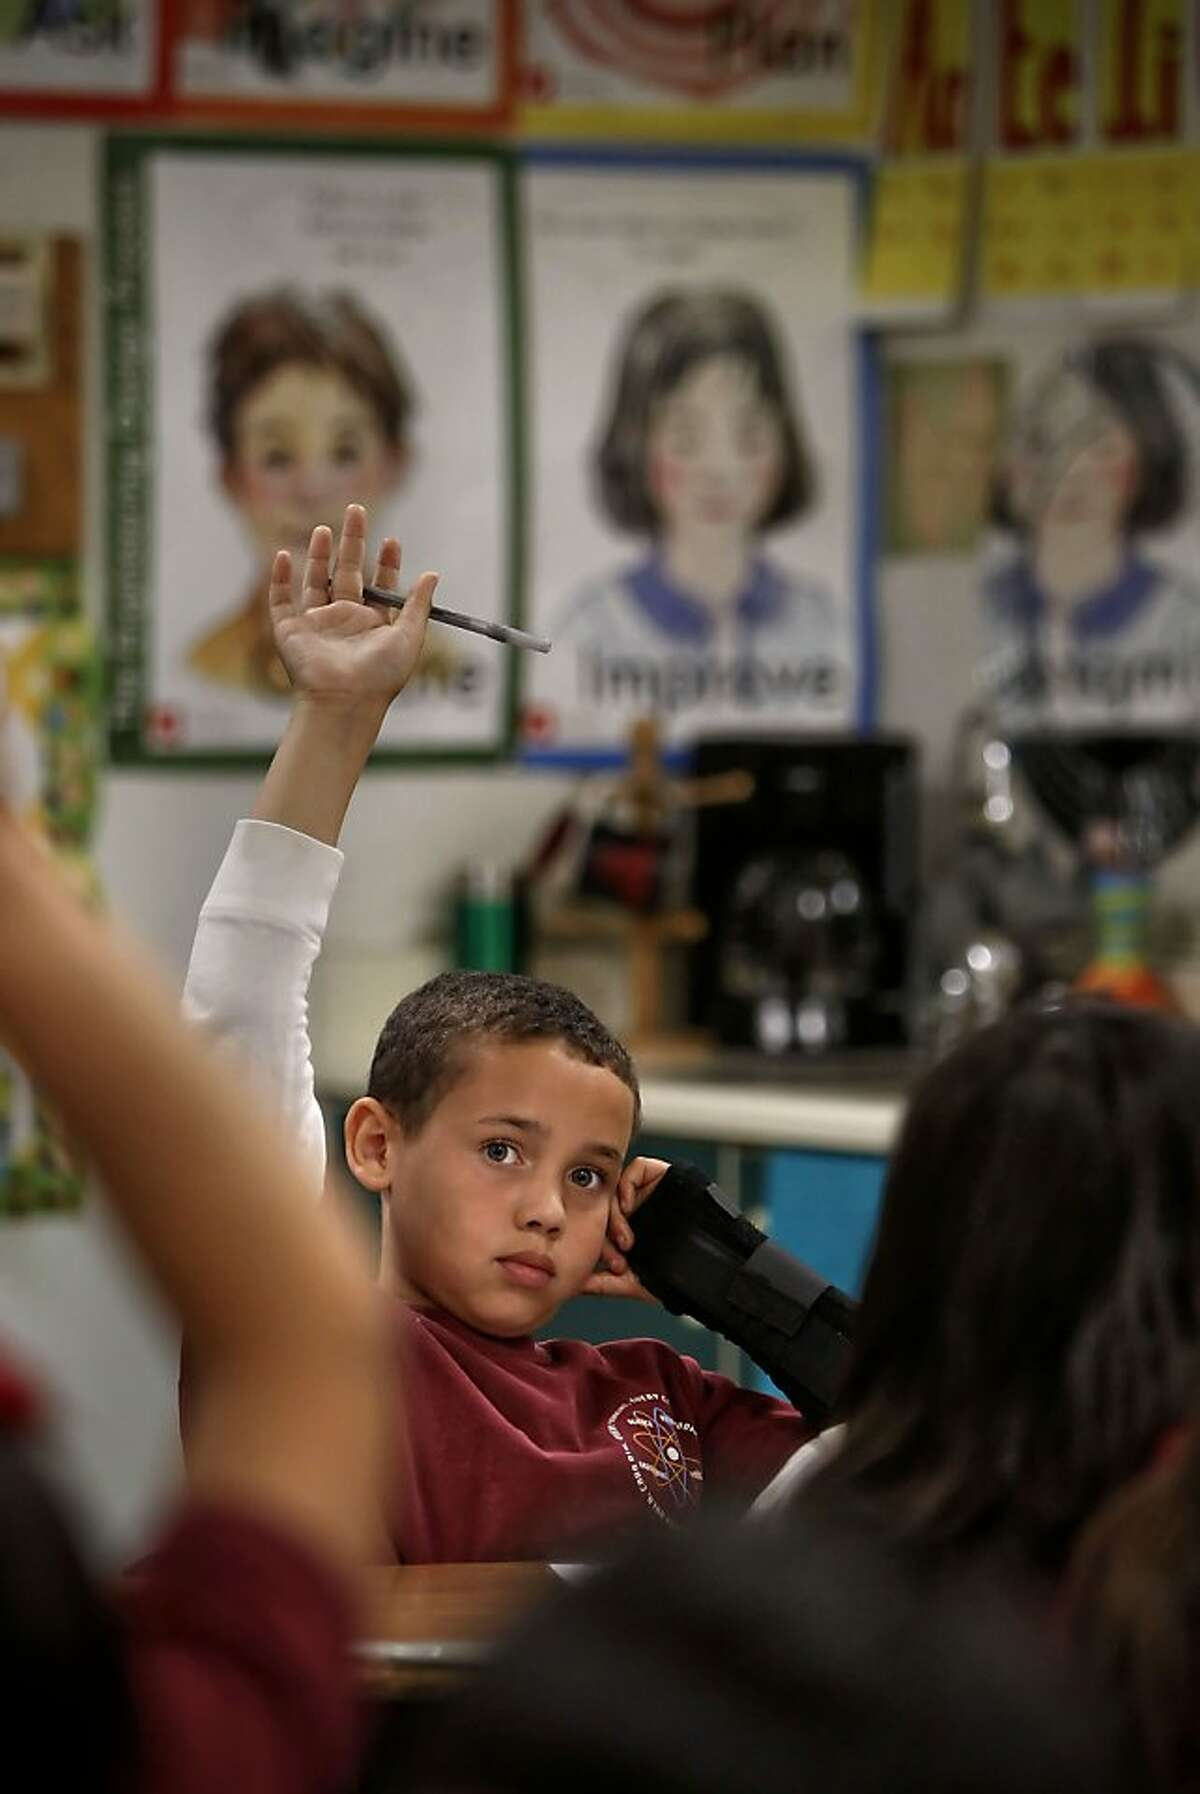 Xander Carradine, at 3rd garder in Jennifer Benis' class is ready to answer a question at the Lazear Charter Academy in Oakland, Ca., on Tuesday Nov. 12, 2013. Lazear is among 40 charter schools throughout the City of Oakland. One school board member has decided to vote against allowing any new charter schools.